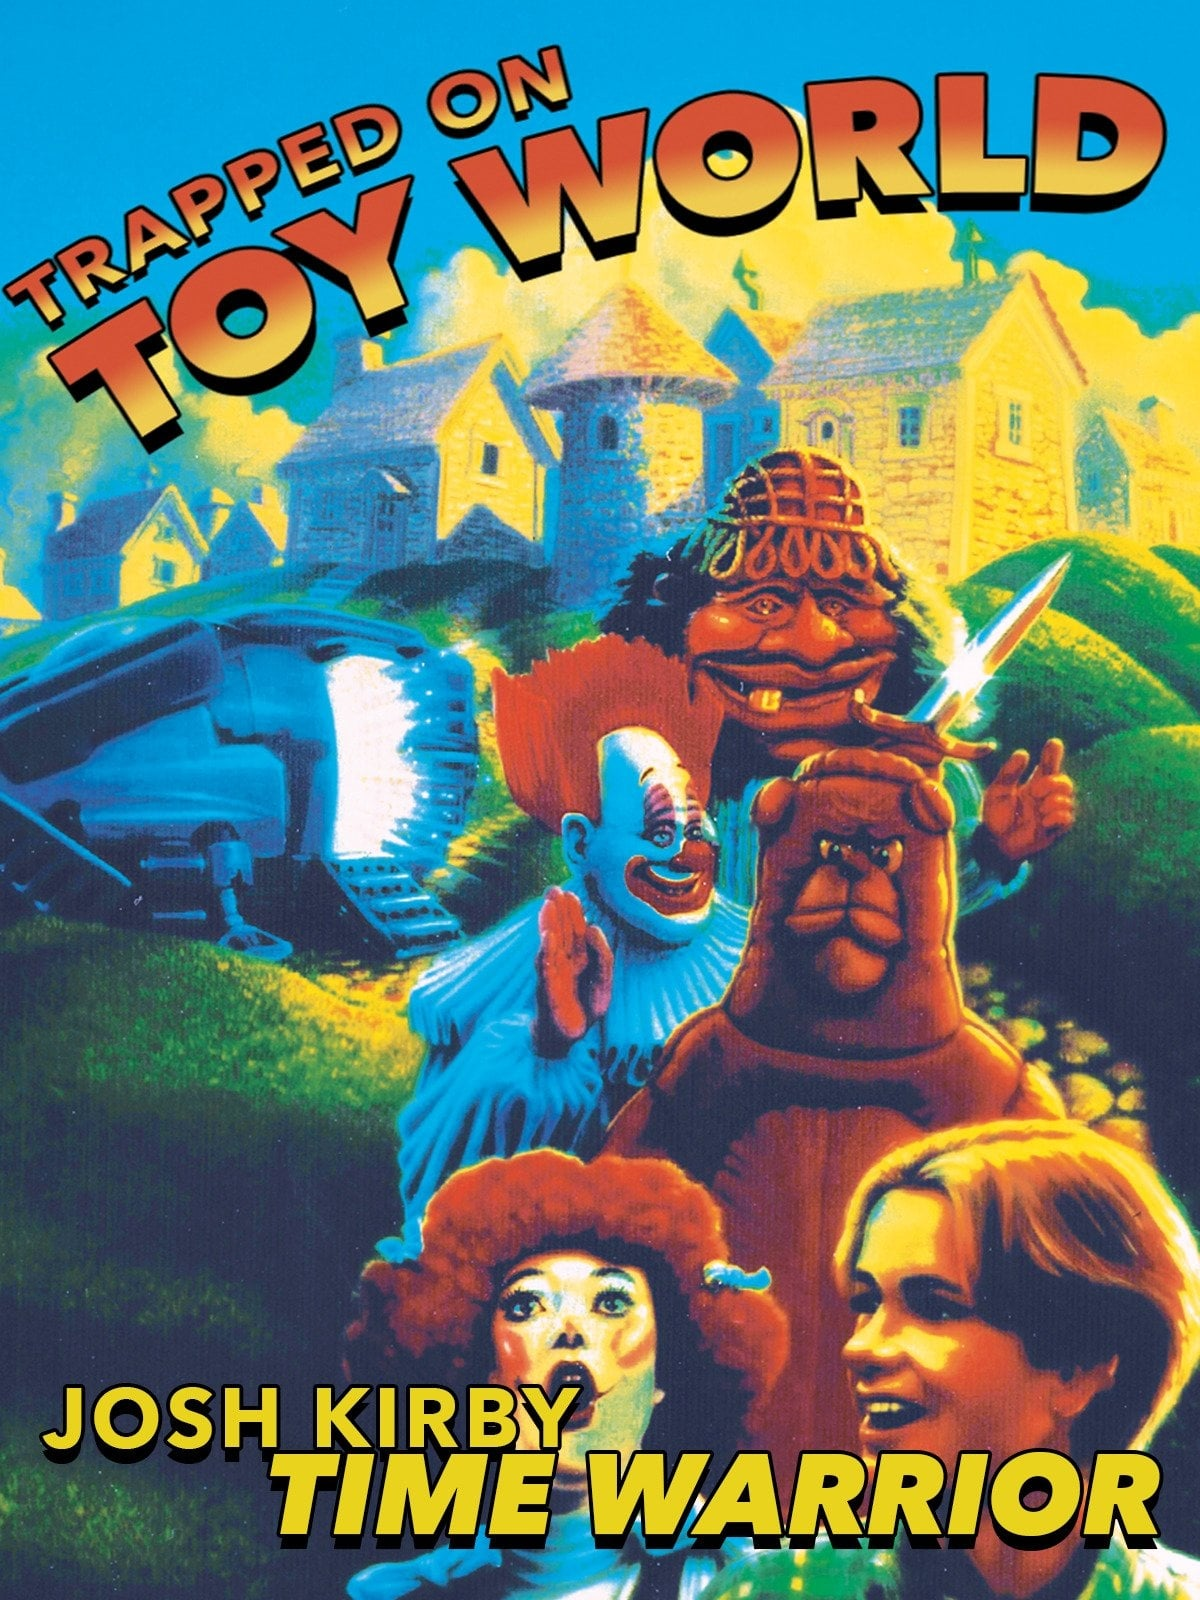 Josh Kirby: Time Warrior! Chap. 3: Trapped on Toyworld on FREECABLE TV